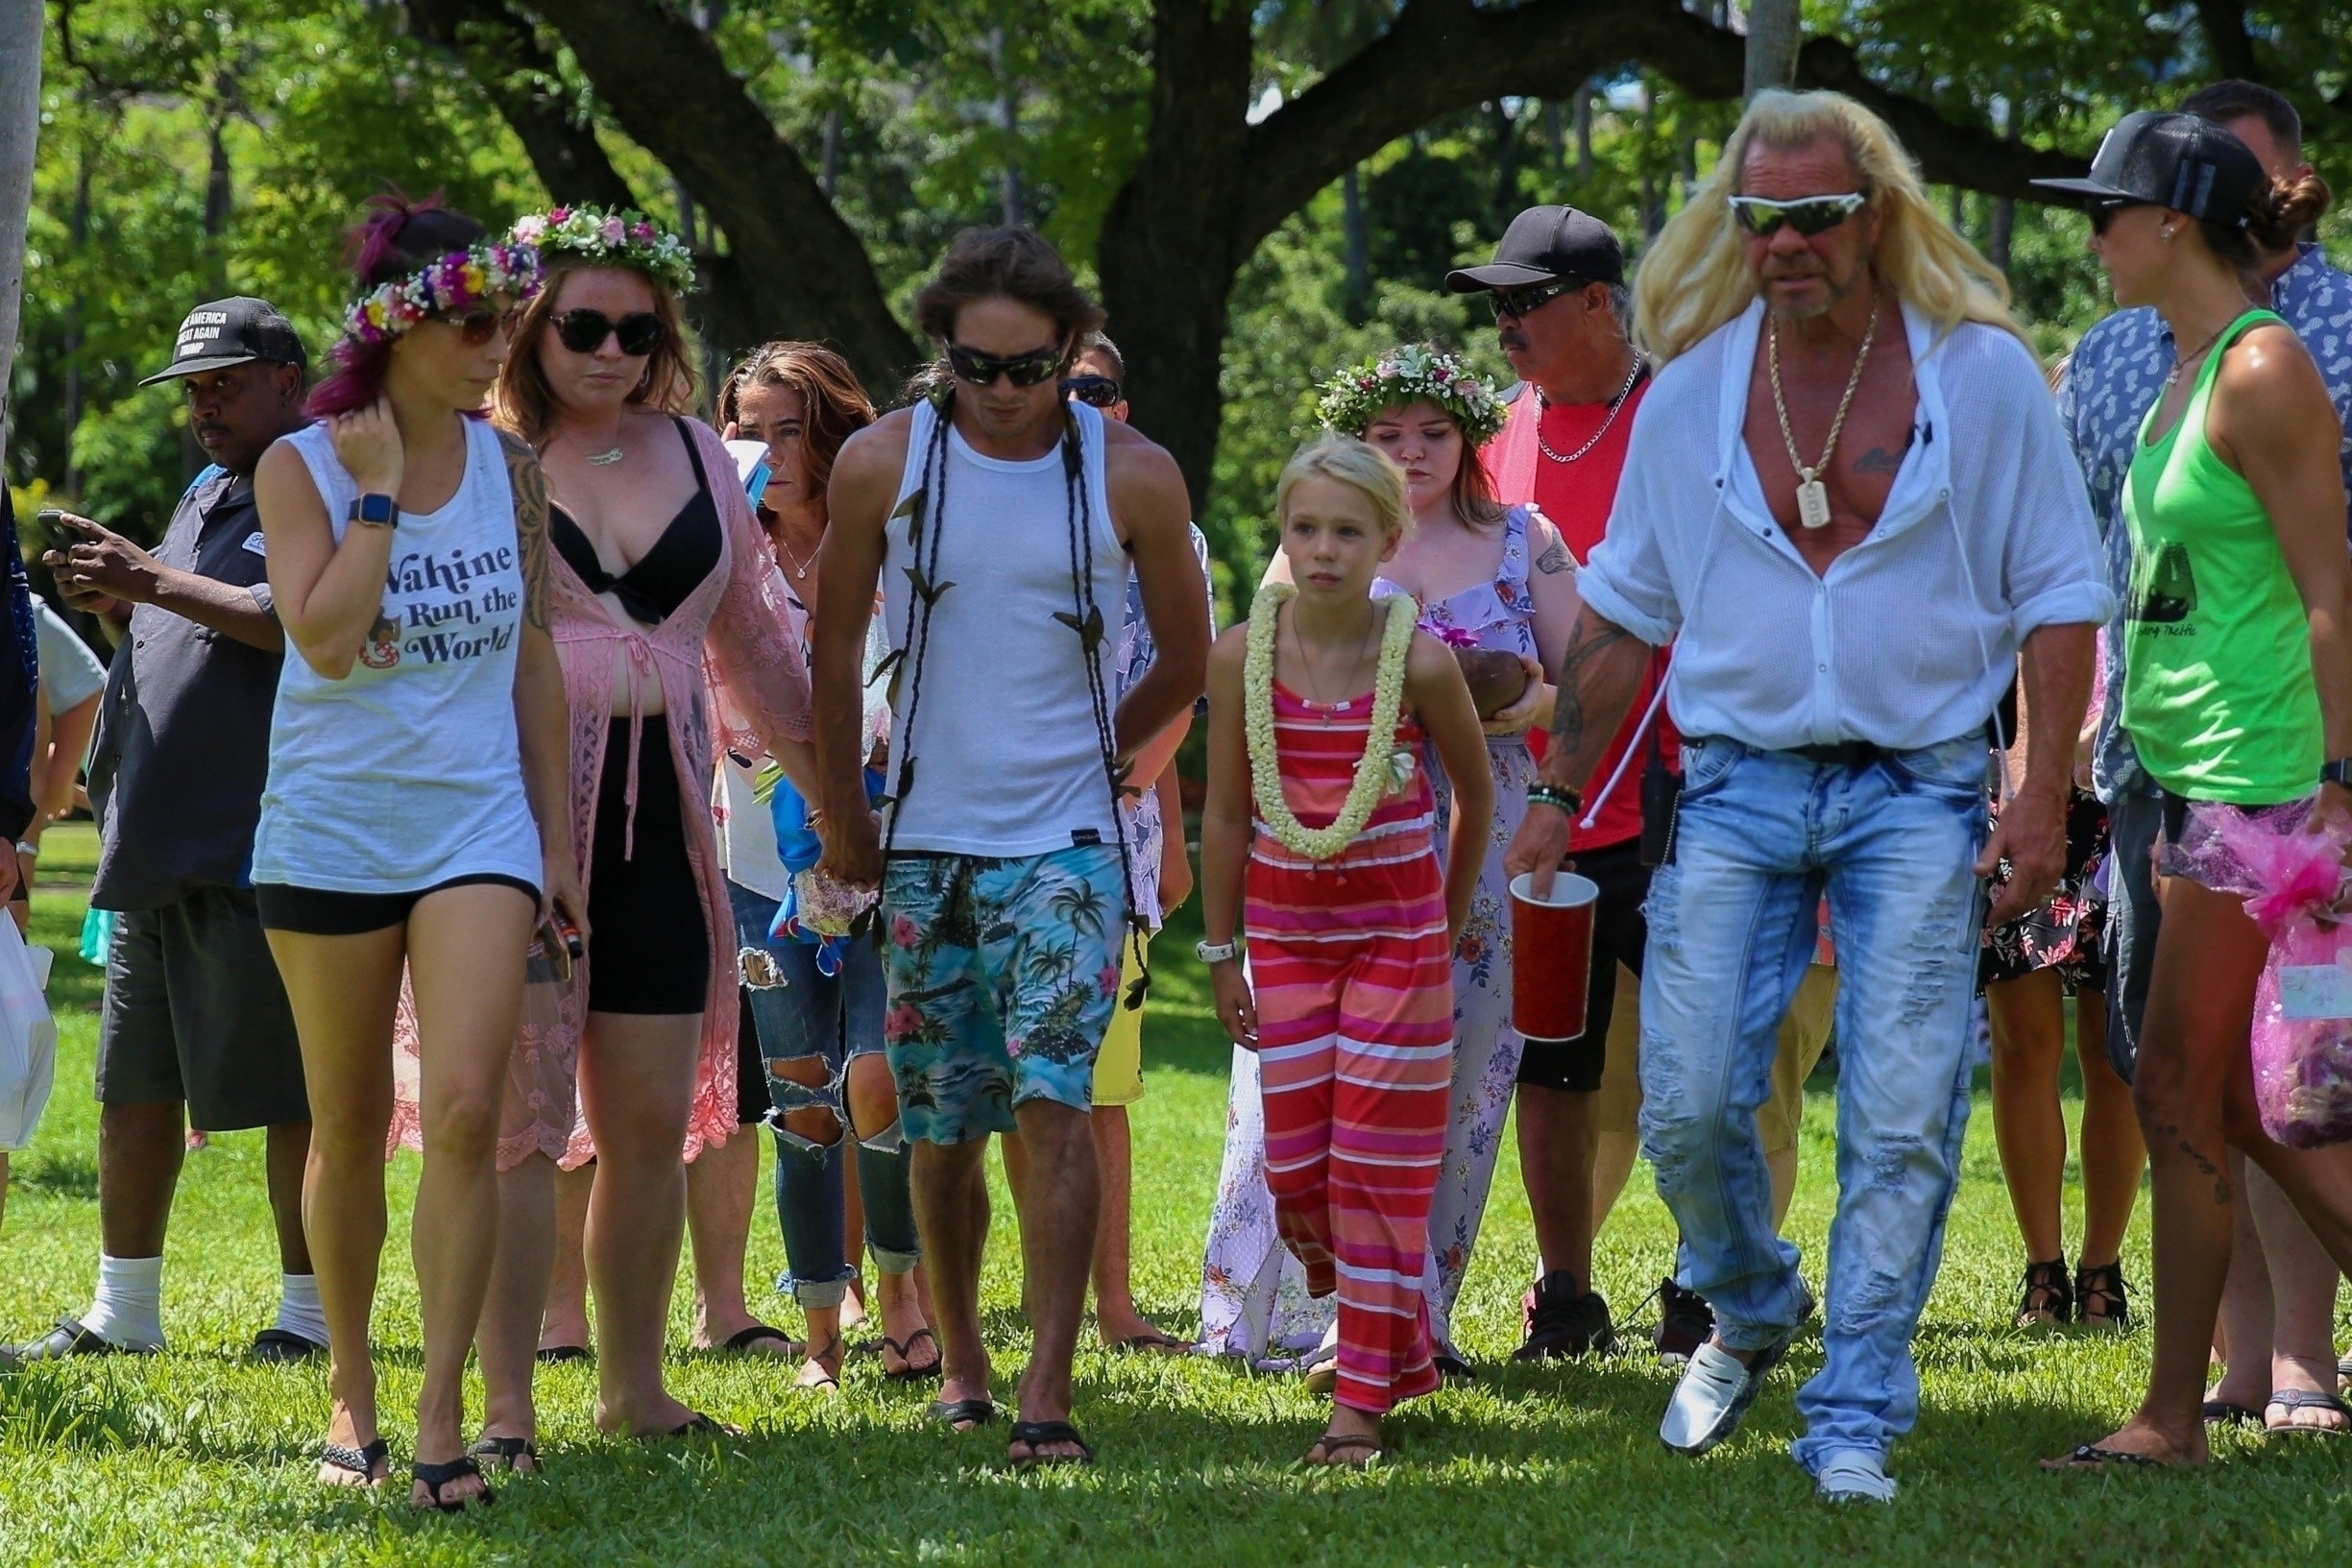 The memorial was held in Hawaii which followed Beth's wishes. Credit: BACKGRID